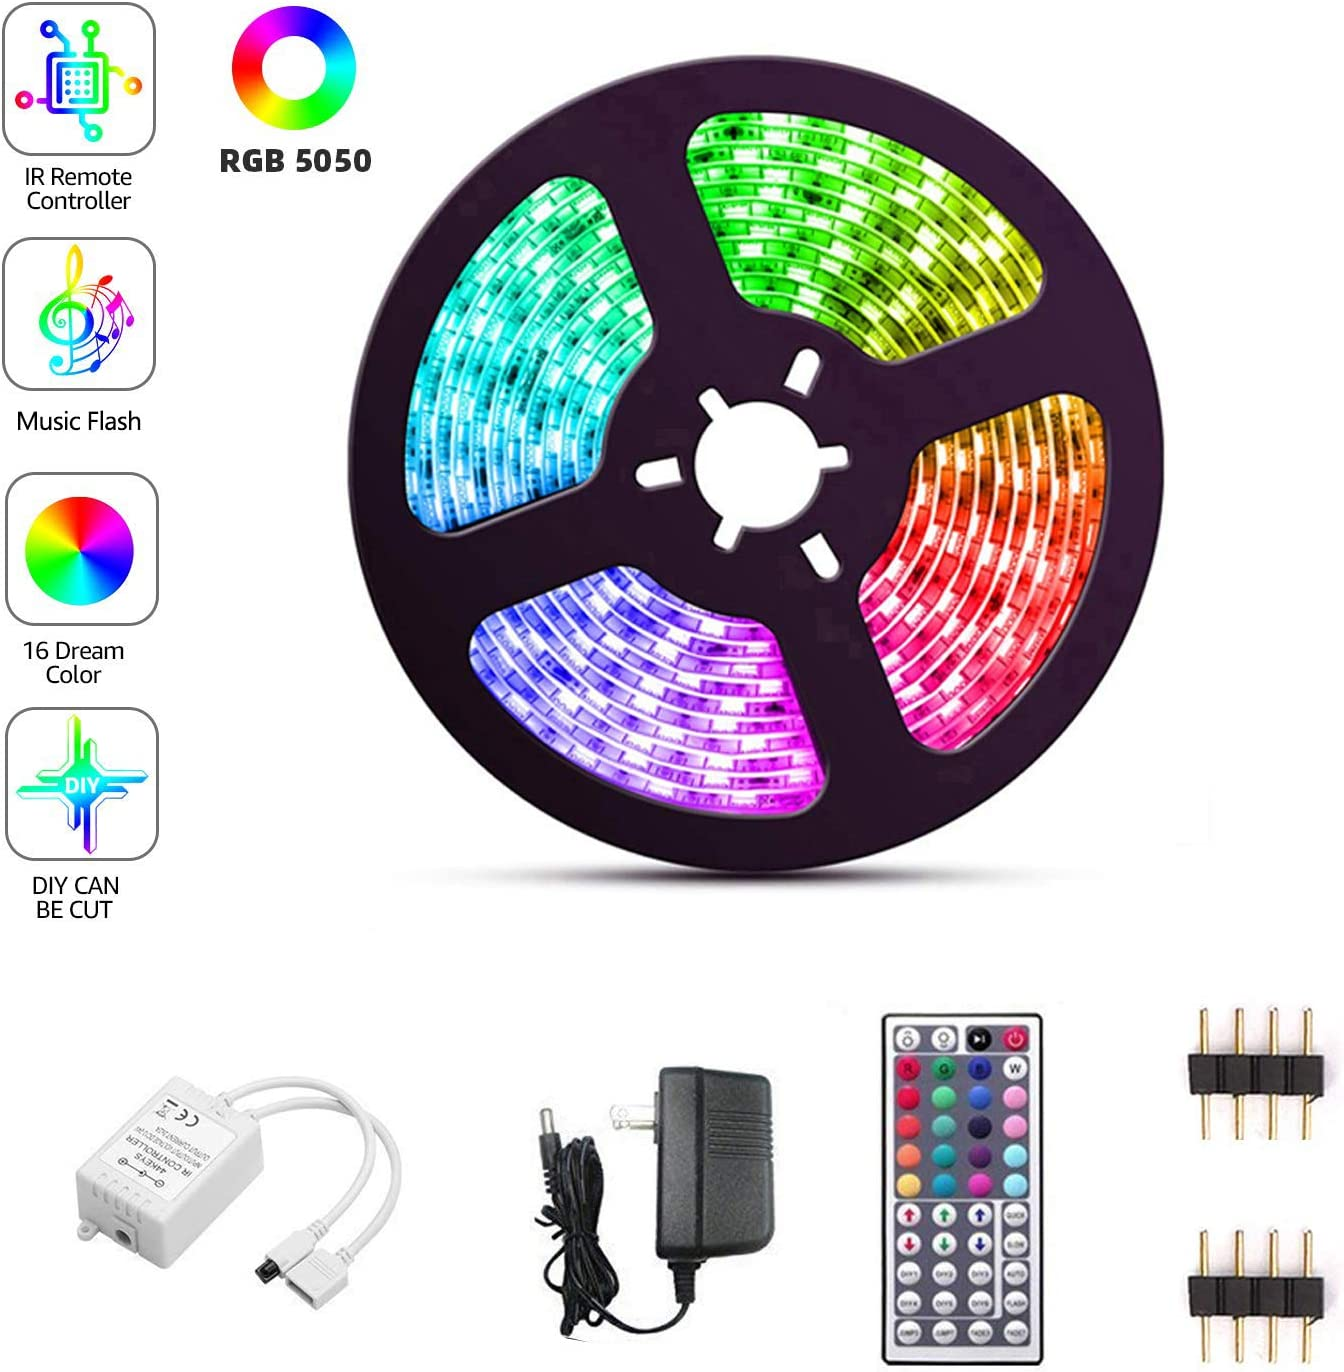 Amazon coupon code for LED Strip Lights